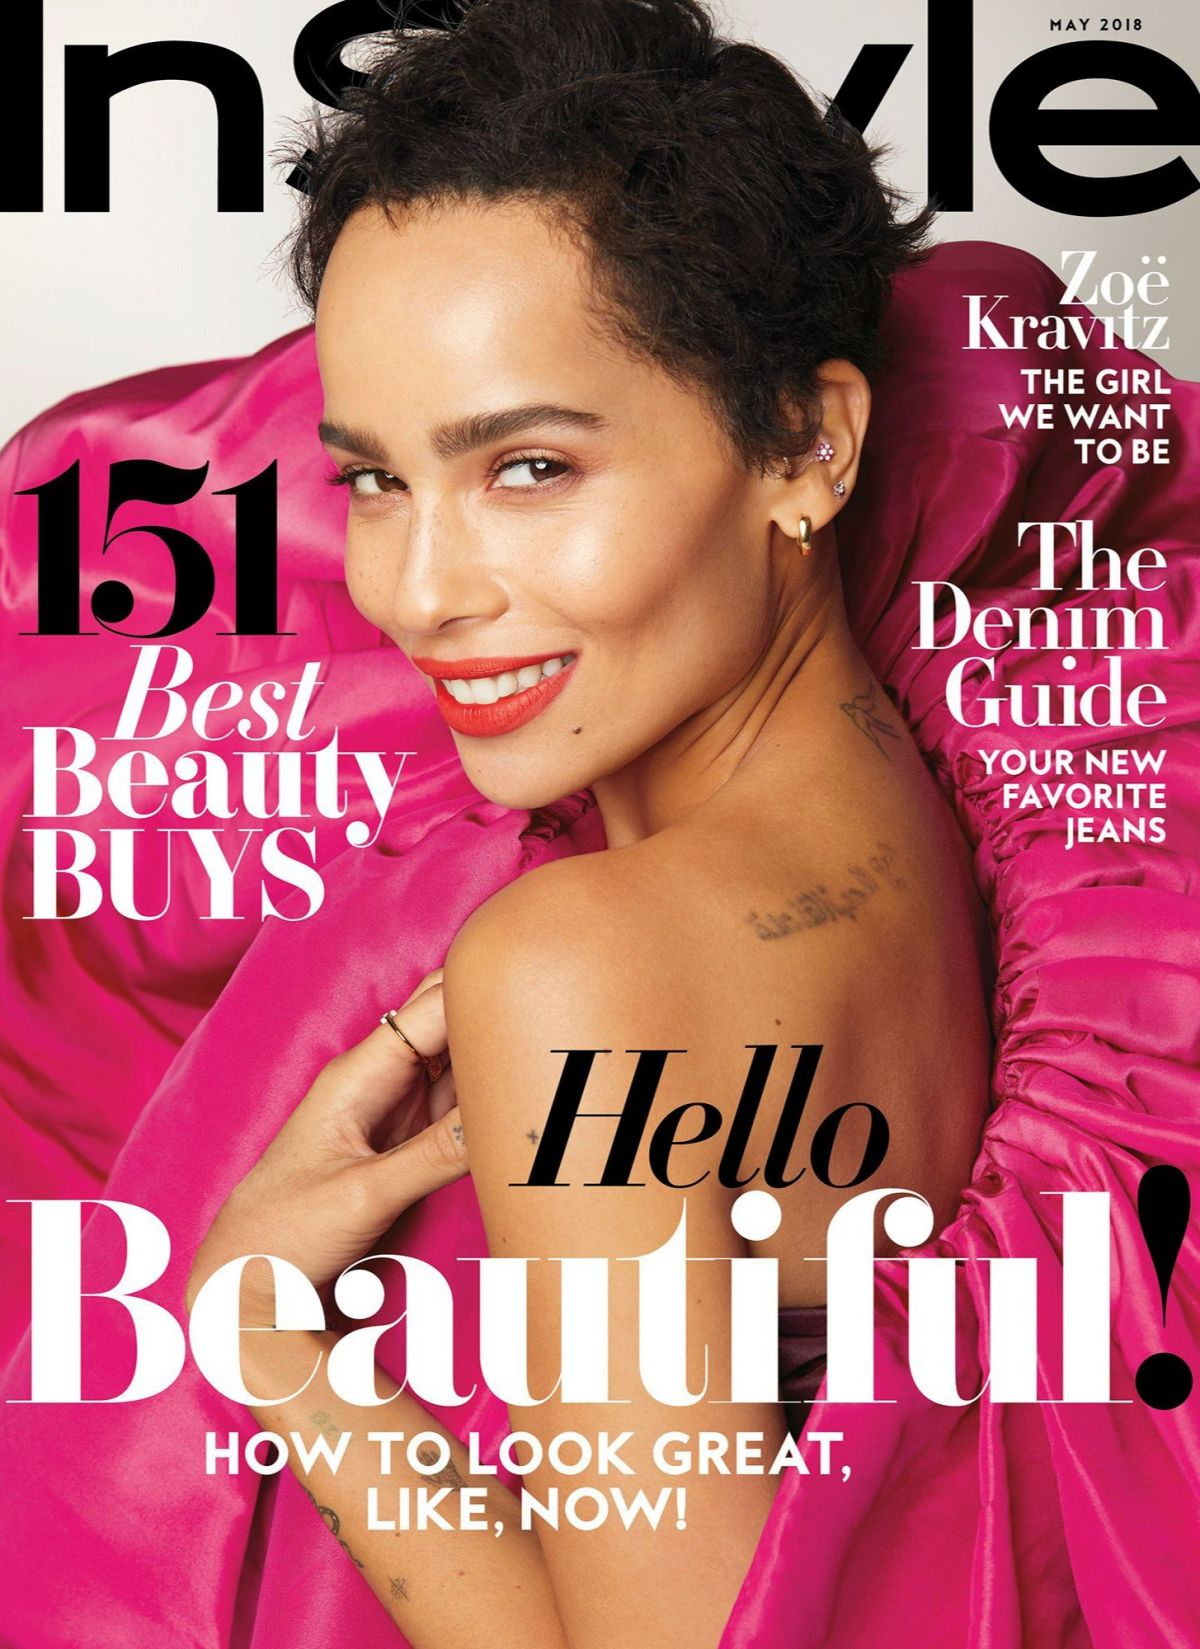 ZOE KRAVITZ In Instyle Magazine, May 2018